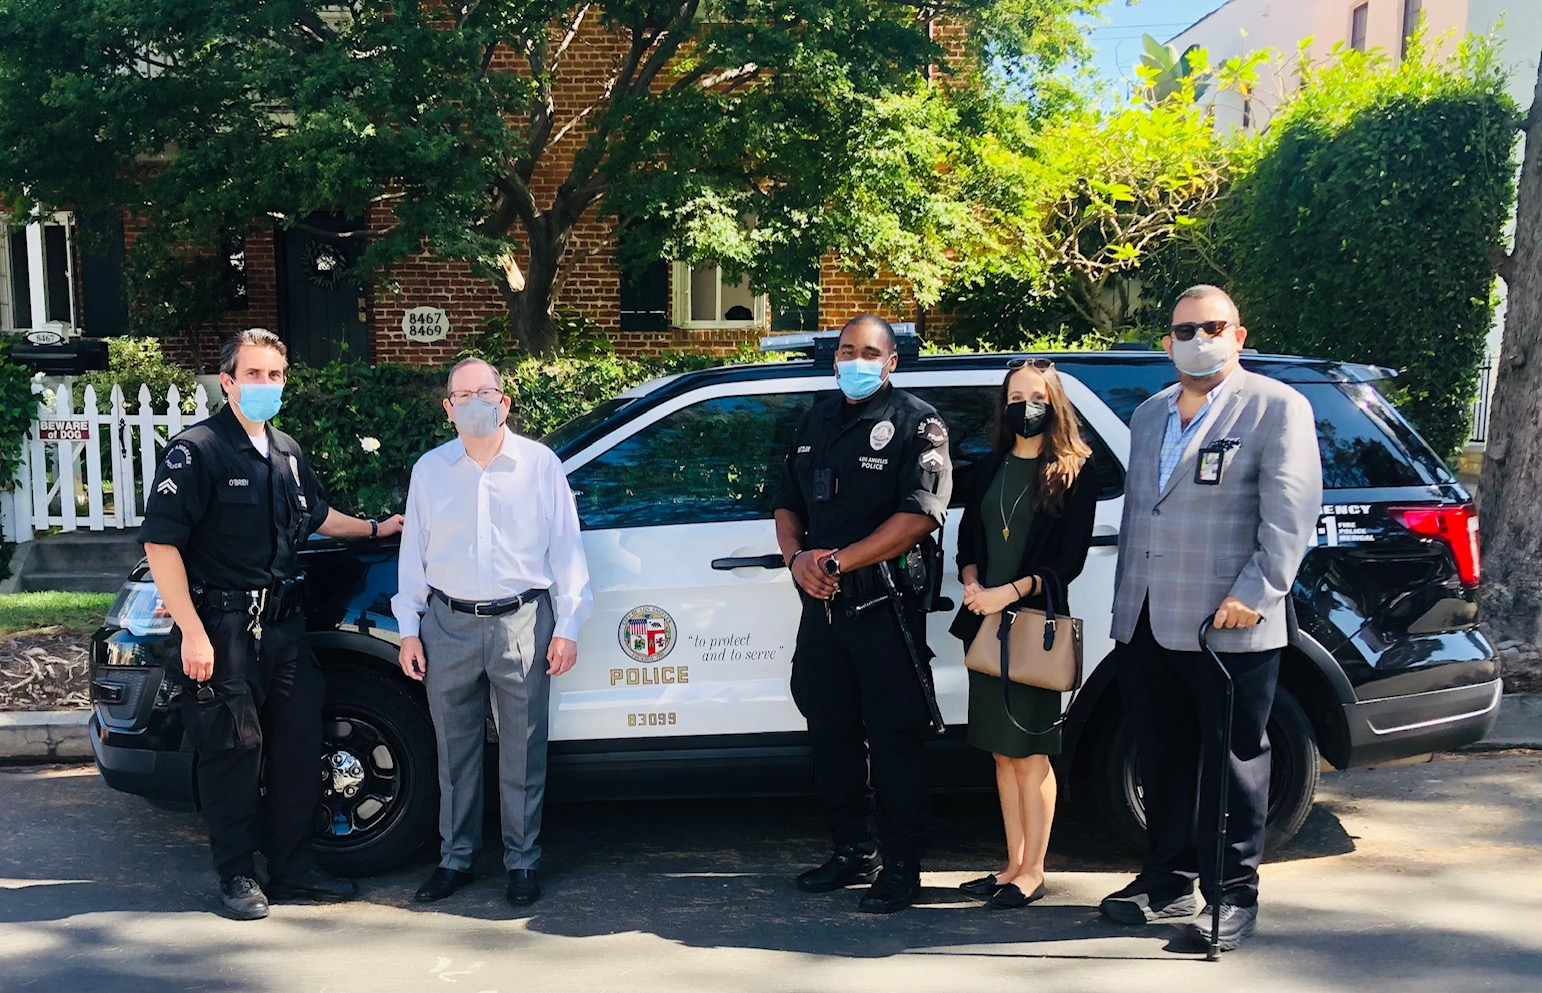 CD5 staff pose w LAPD Wilshire Division SLOs and patrol car